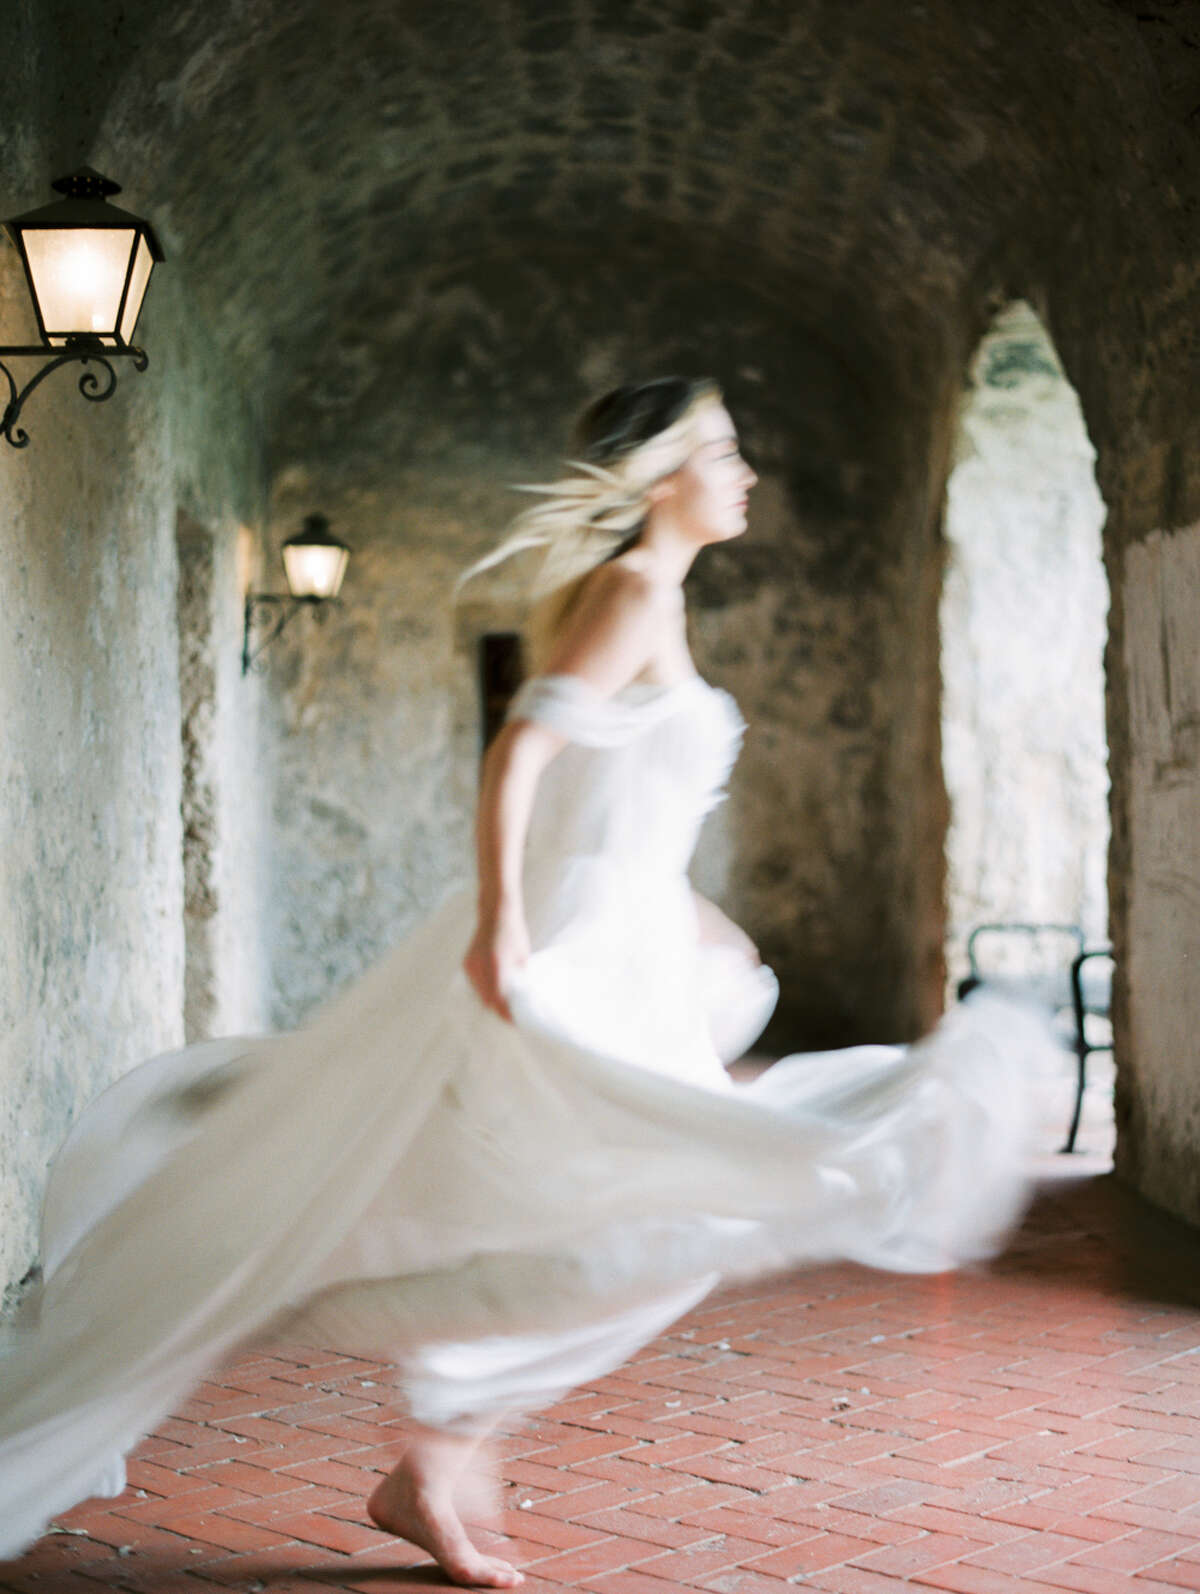 San Francisco-based photographer William Trang chose San Antonio's Mission Concepcion for a series of bridal inspiration photos that he took in May and then submitted to Magnolia Rouge. The New Zealand-based website and blog accepted his submission and recently showcased the photos.